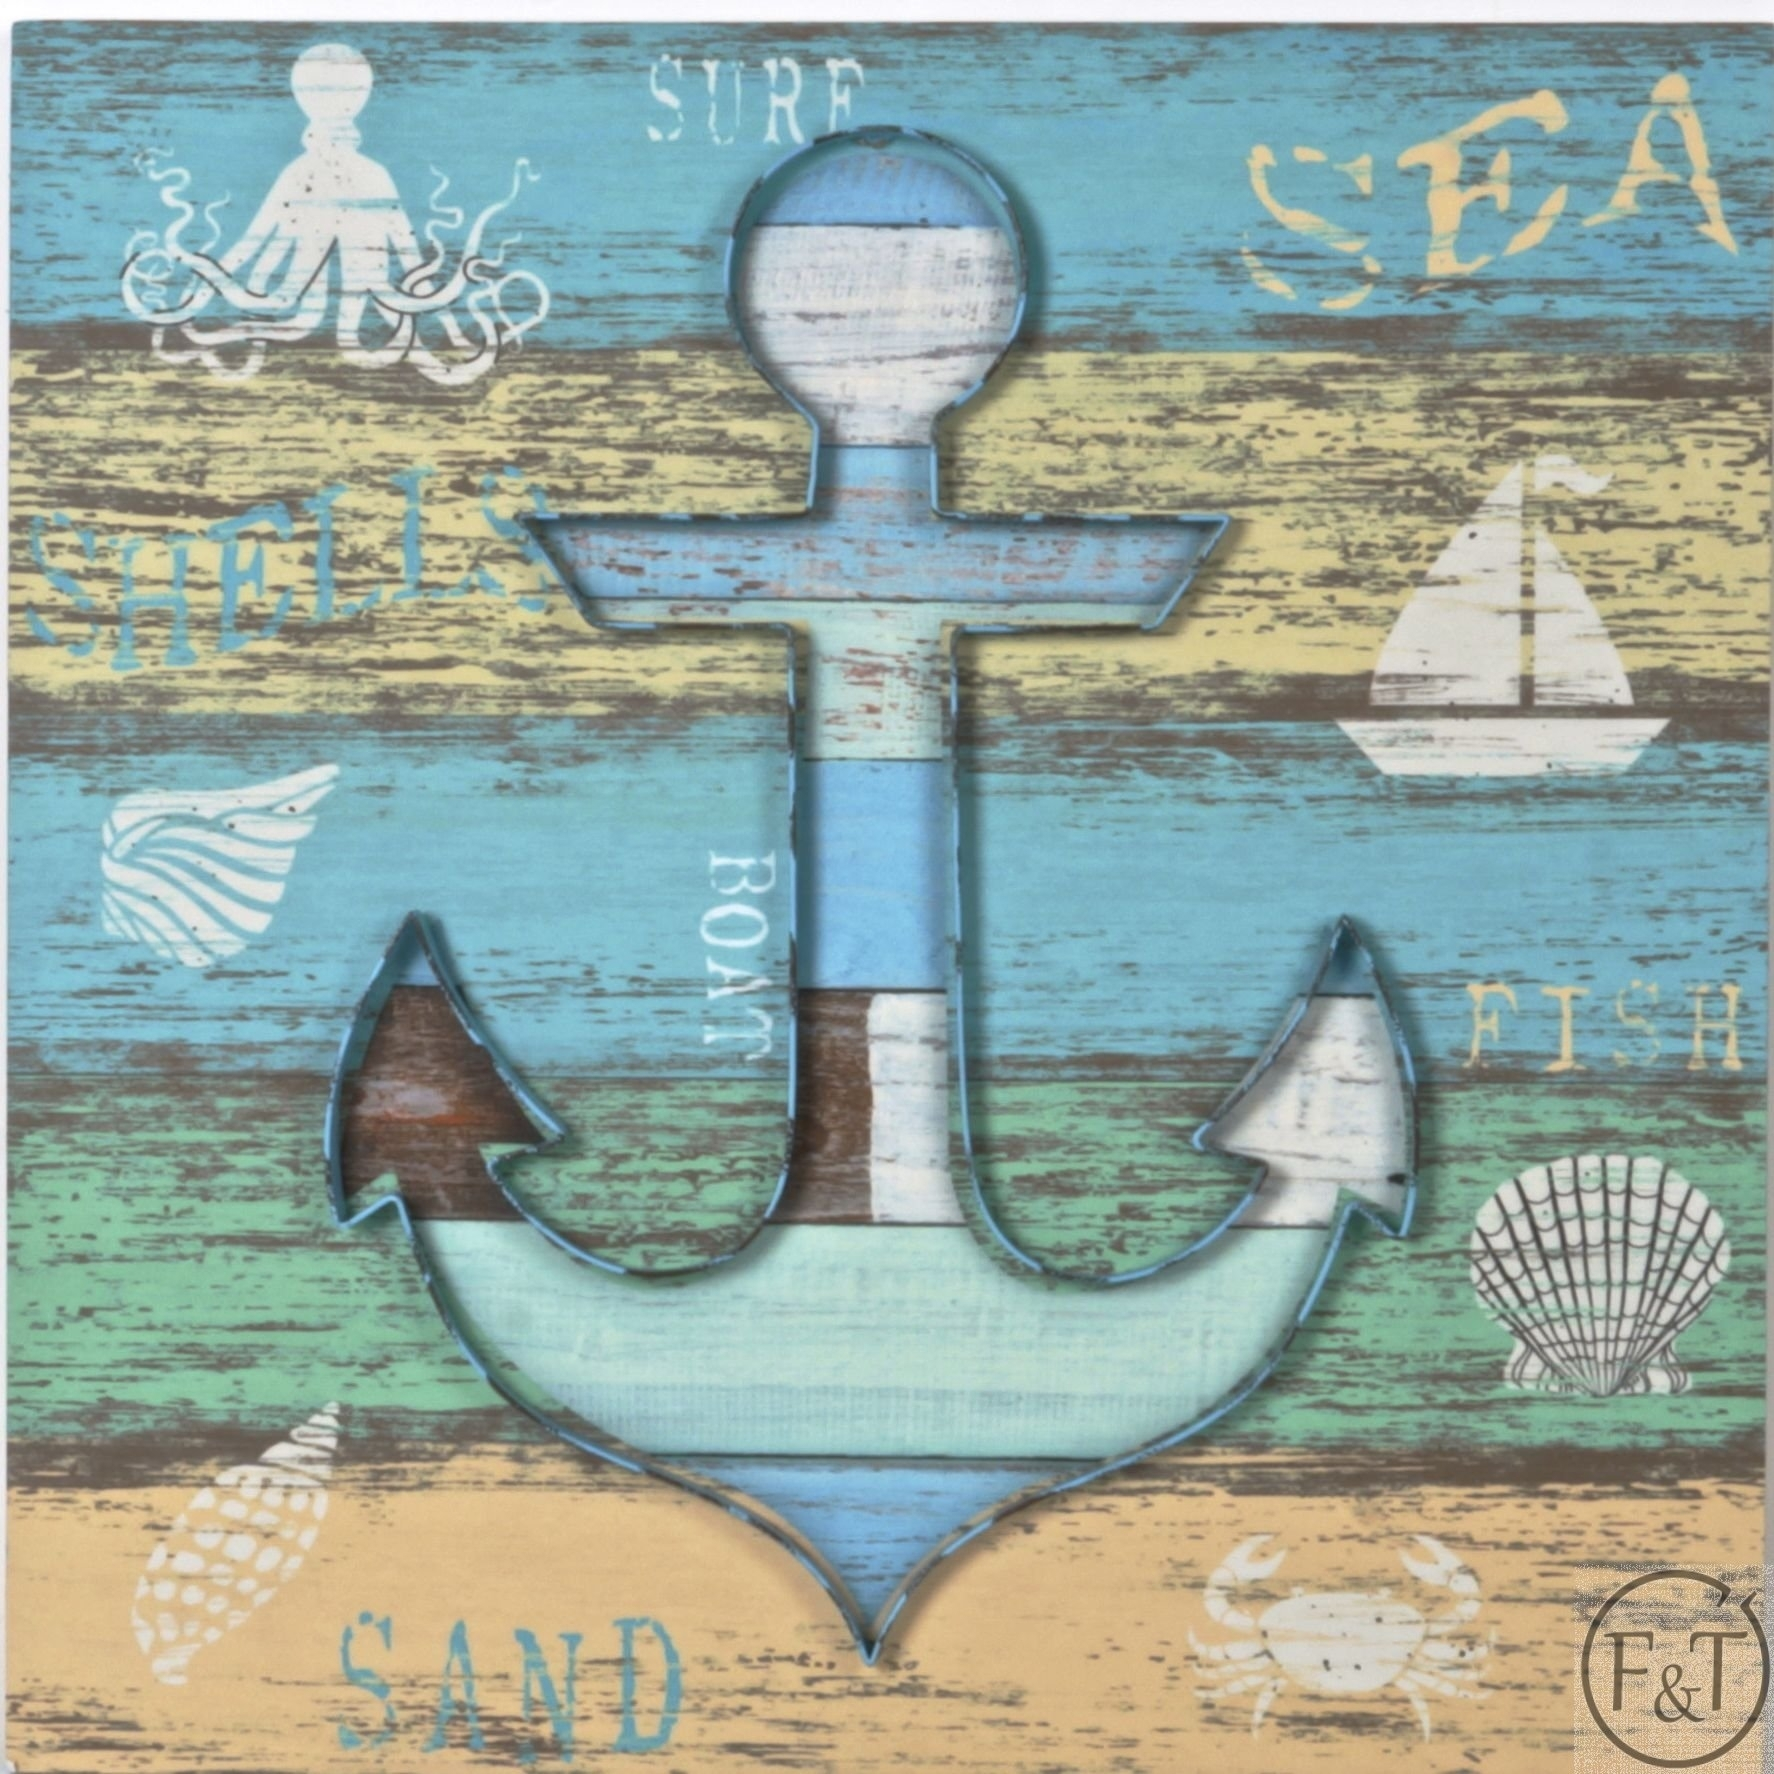 Buy Wood And Metal Anchor Wall Art Wholesale In Canada At Forpost For Latest Anchor Wall Art (View 8 of 20)